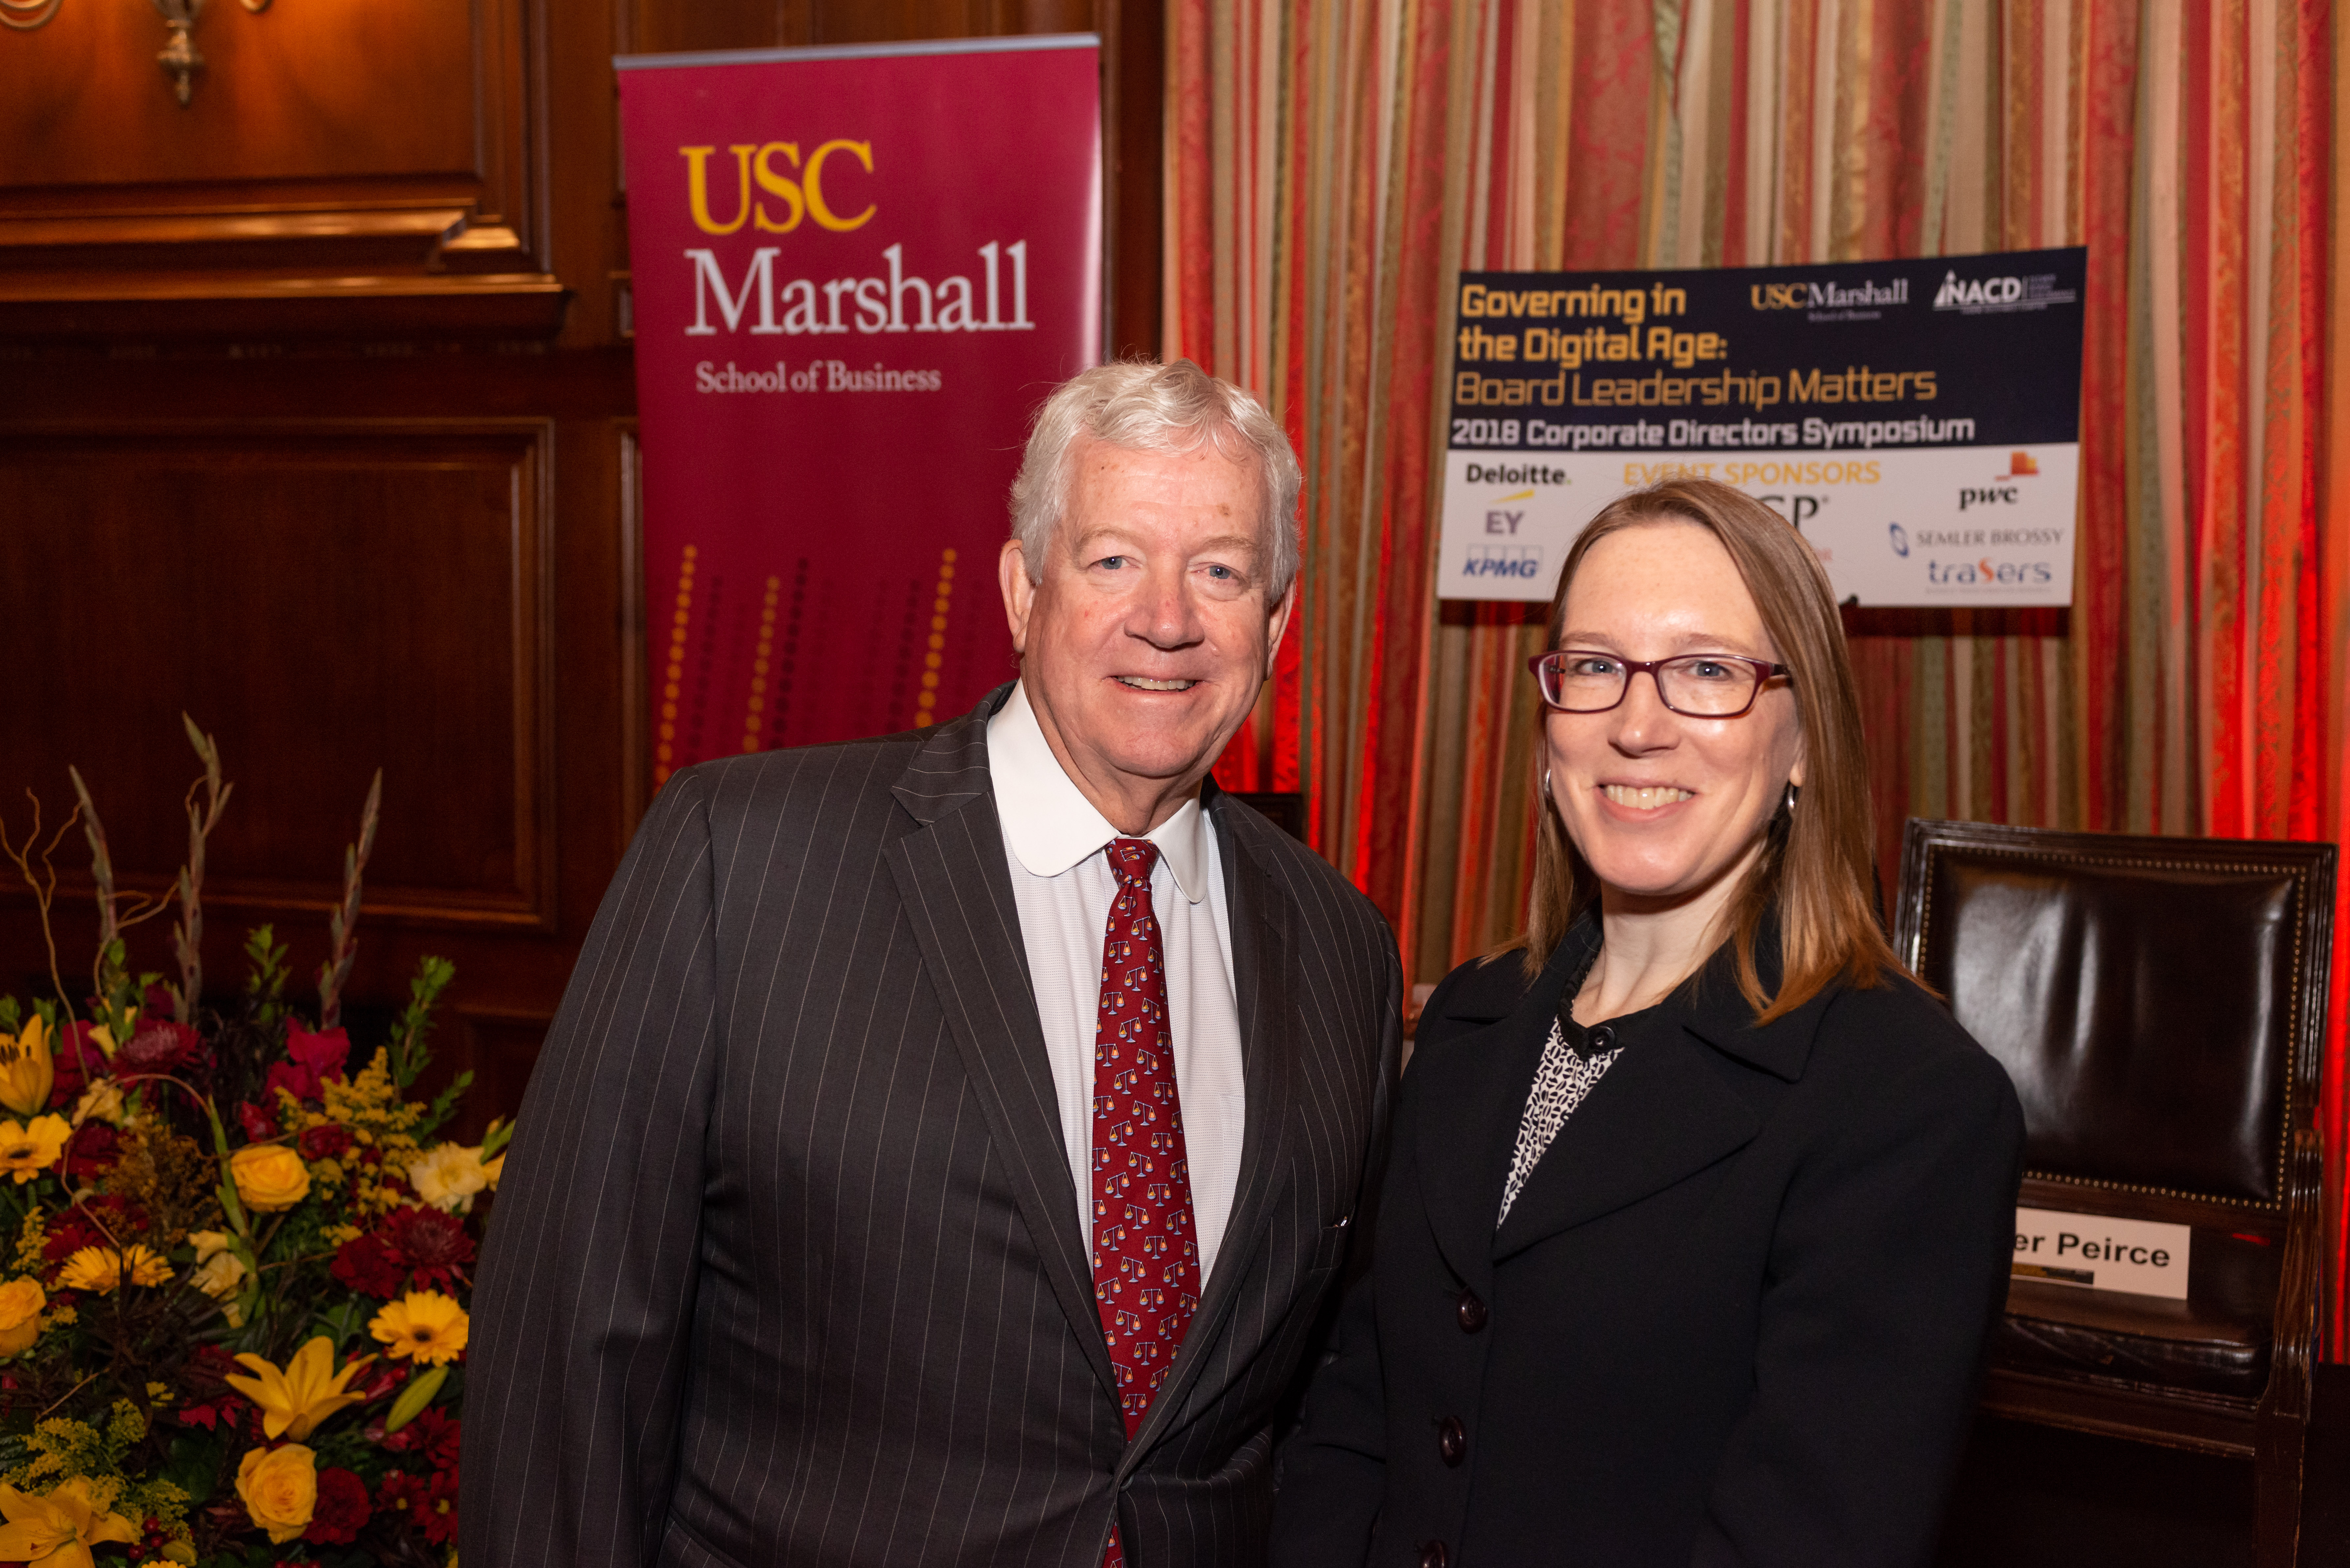 USC Marshall Dean James, Ellis, SEC Commissioner H